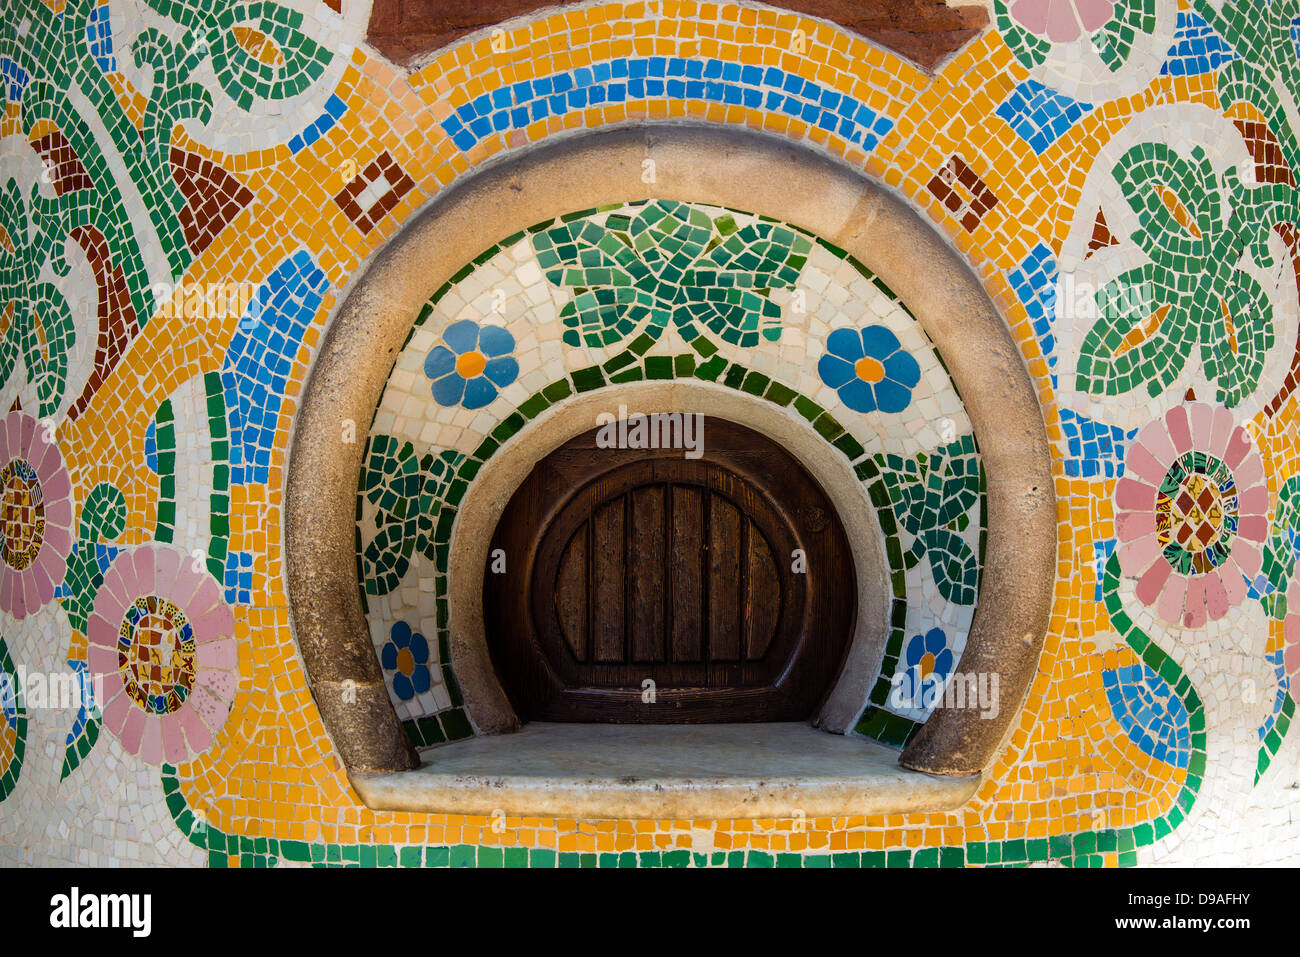 Ticket box, Palau de la Musica Catalana (Palace of Catalan Music), Barcelona, Catalonia, Spain - Stock Image